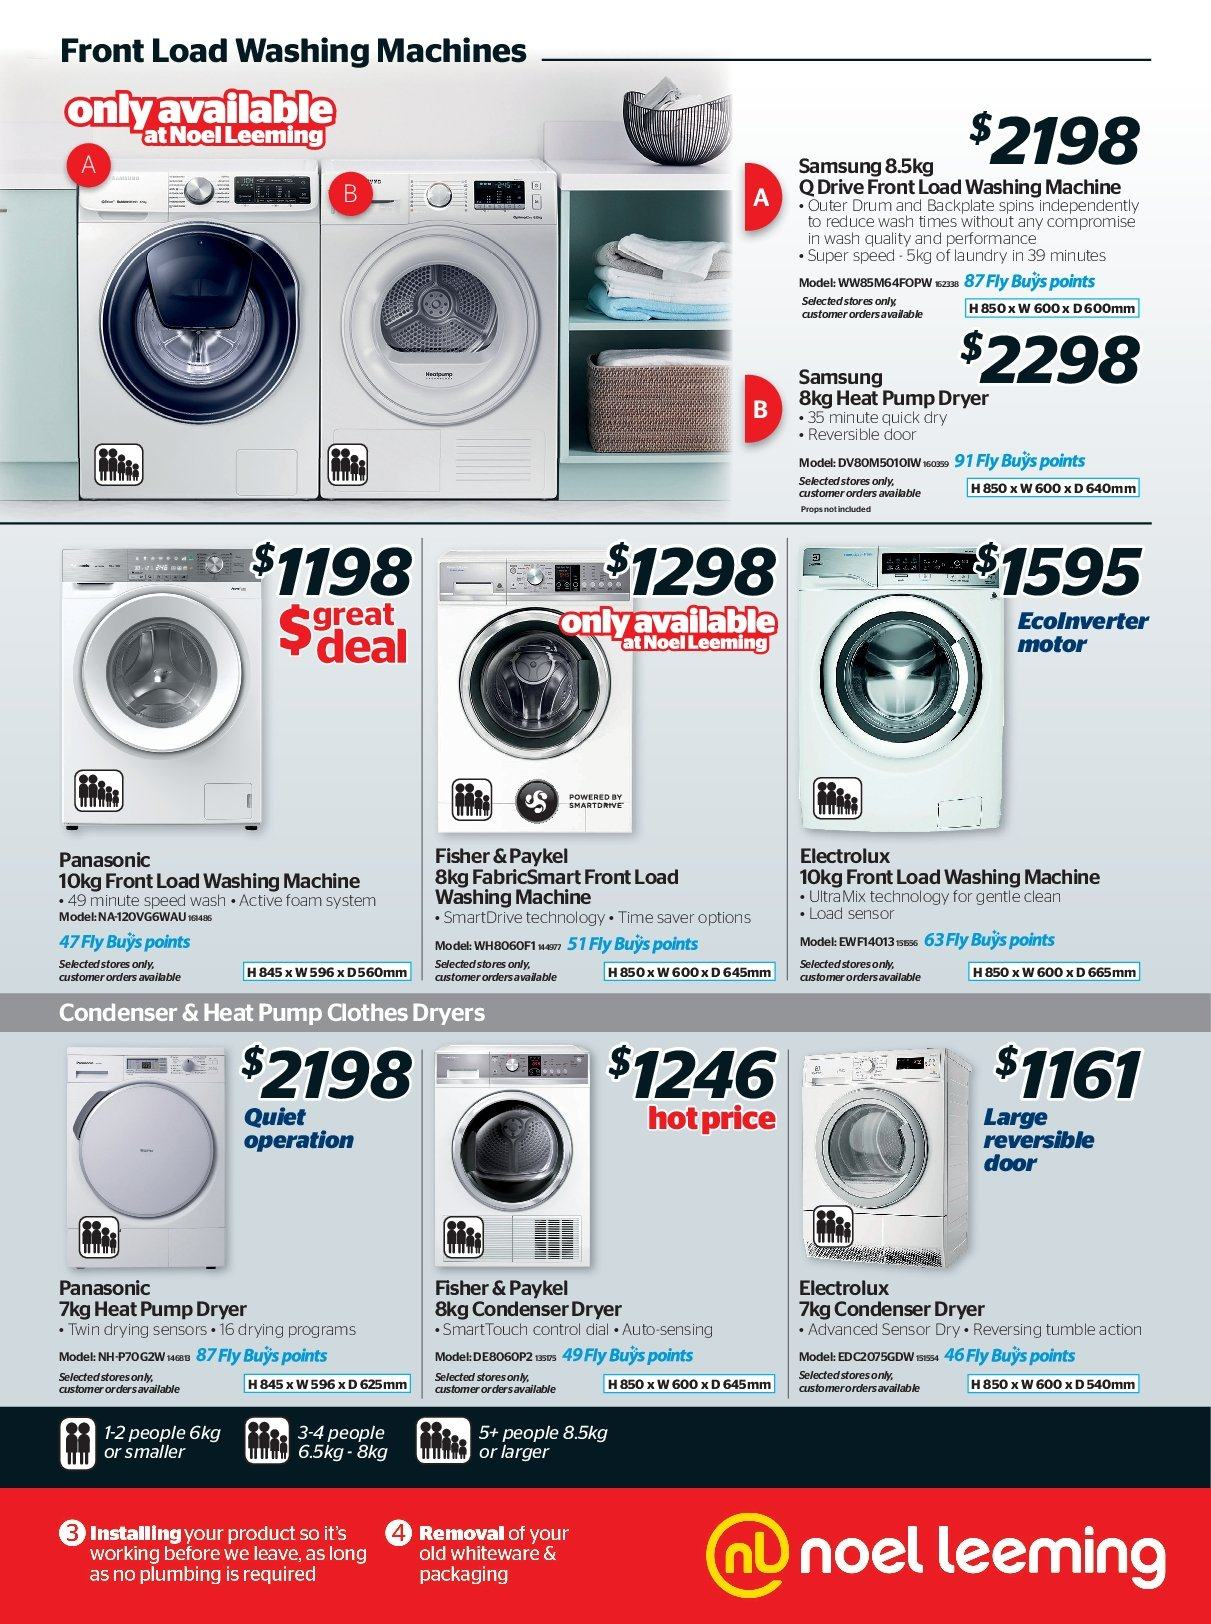 Noel Leeming mailer - 16.05.2018 - 29.05.2018 - Sales products - door, dryer, electrolux, foam, samsung, quick dry, panasonic, washing machine. Page 11.